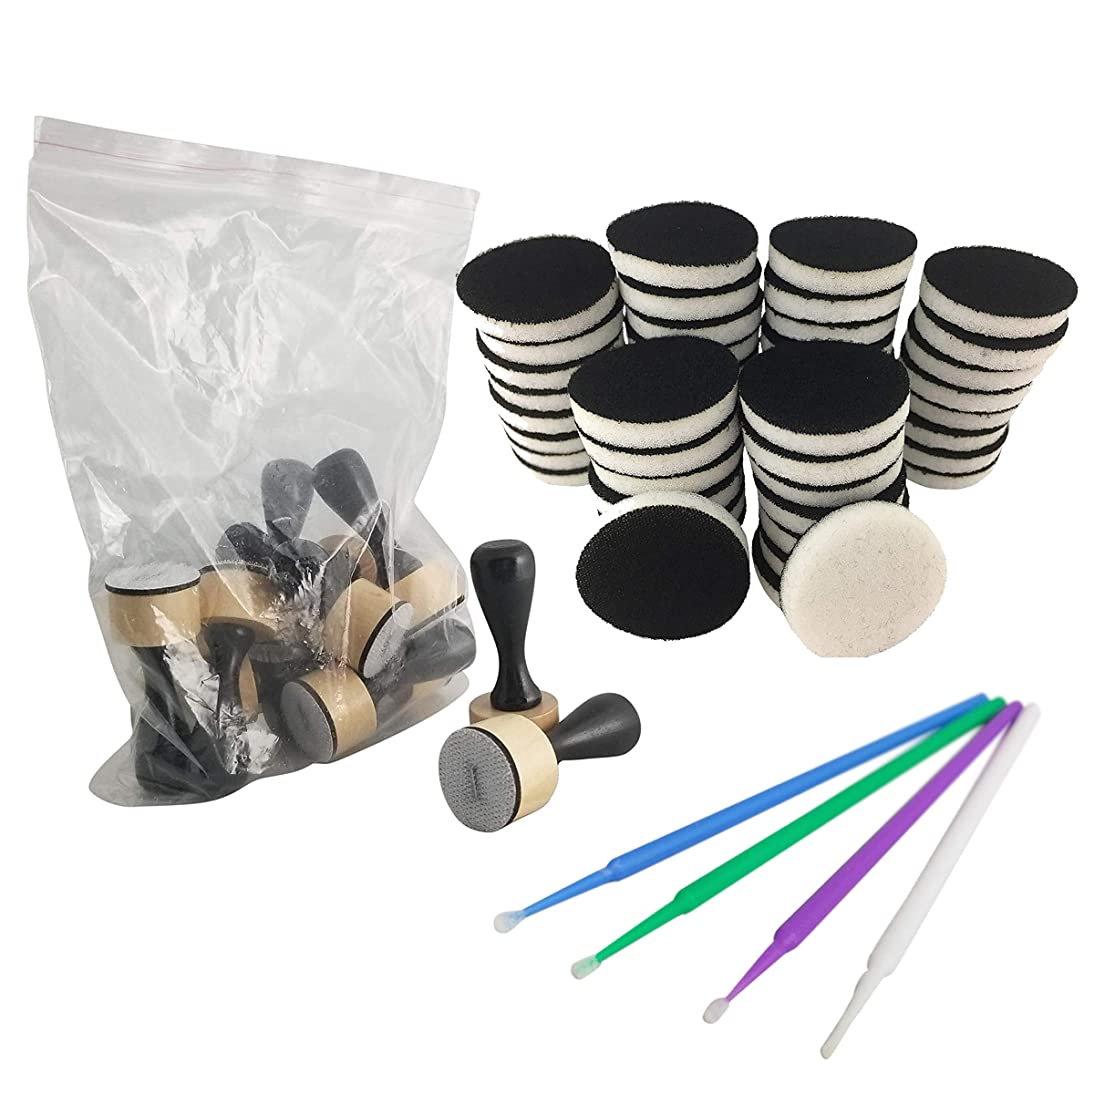 Tim Holtz - Ranger - Ink Mini Ink Blending Tool Big Pack of 12-1 Inch Ink Round Blending Replacement Foams, Mini, 50-Pack